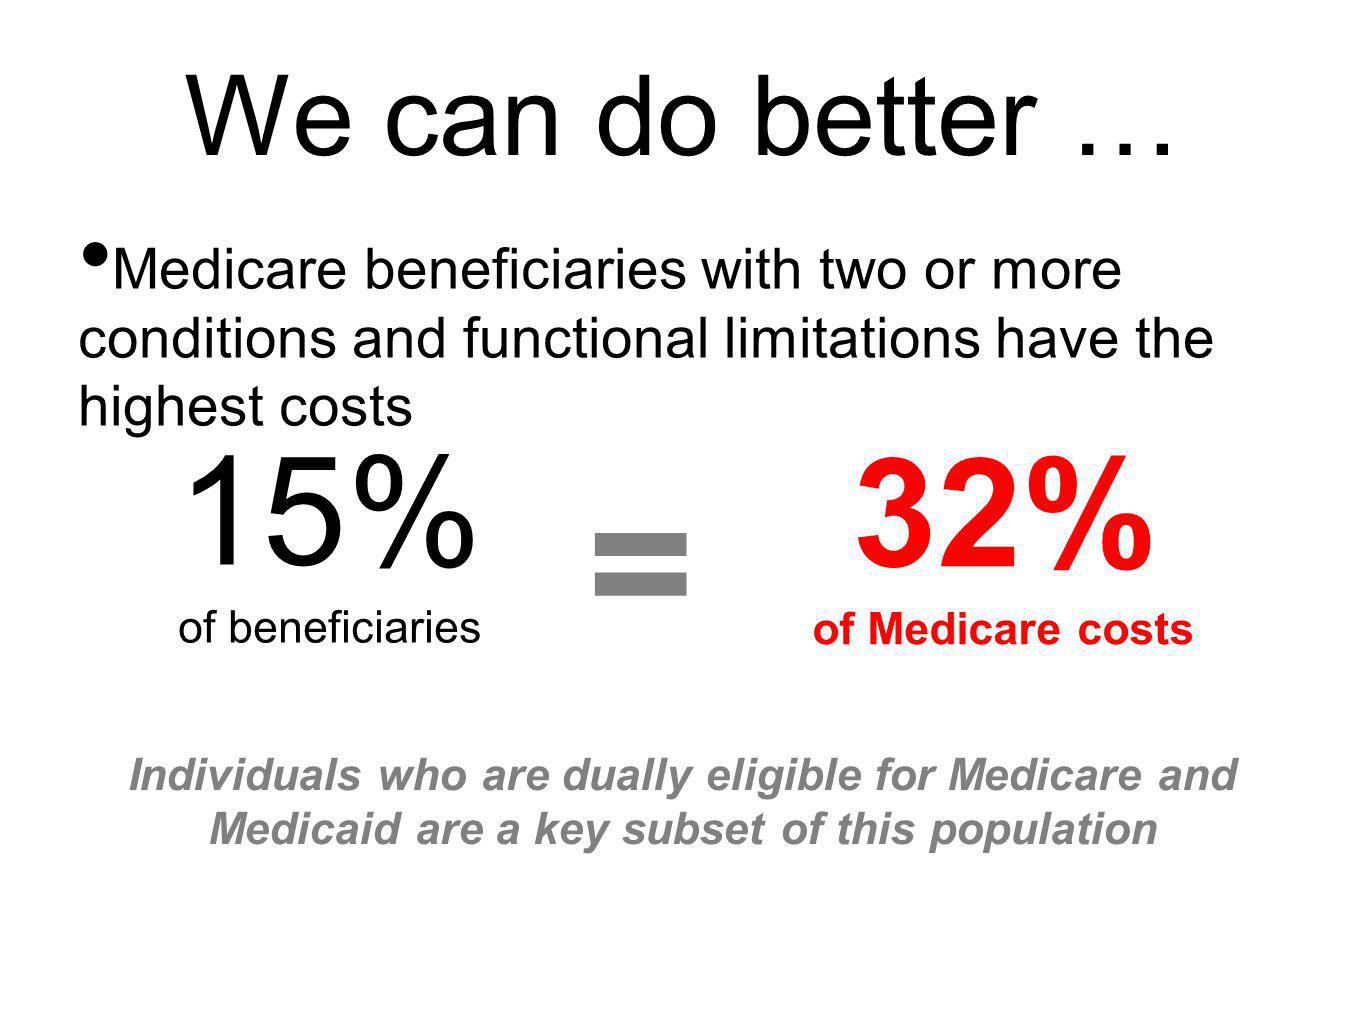 We can do better … Medicare beneficiaries with two or more conditions and functional limitations have the highest costs 15% of beneficiaries 32% of Me